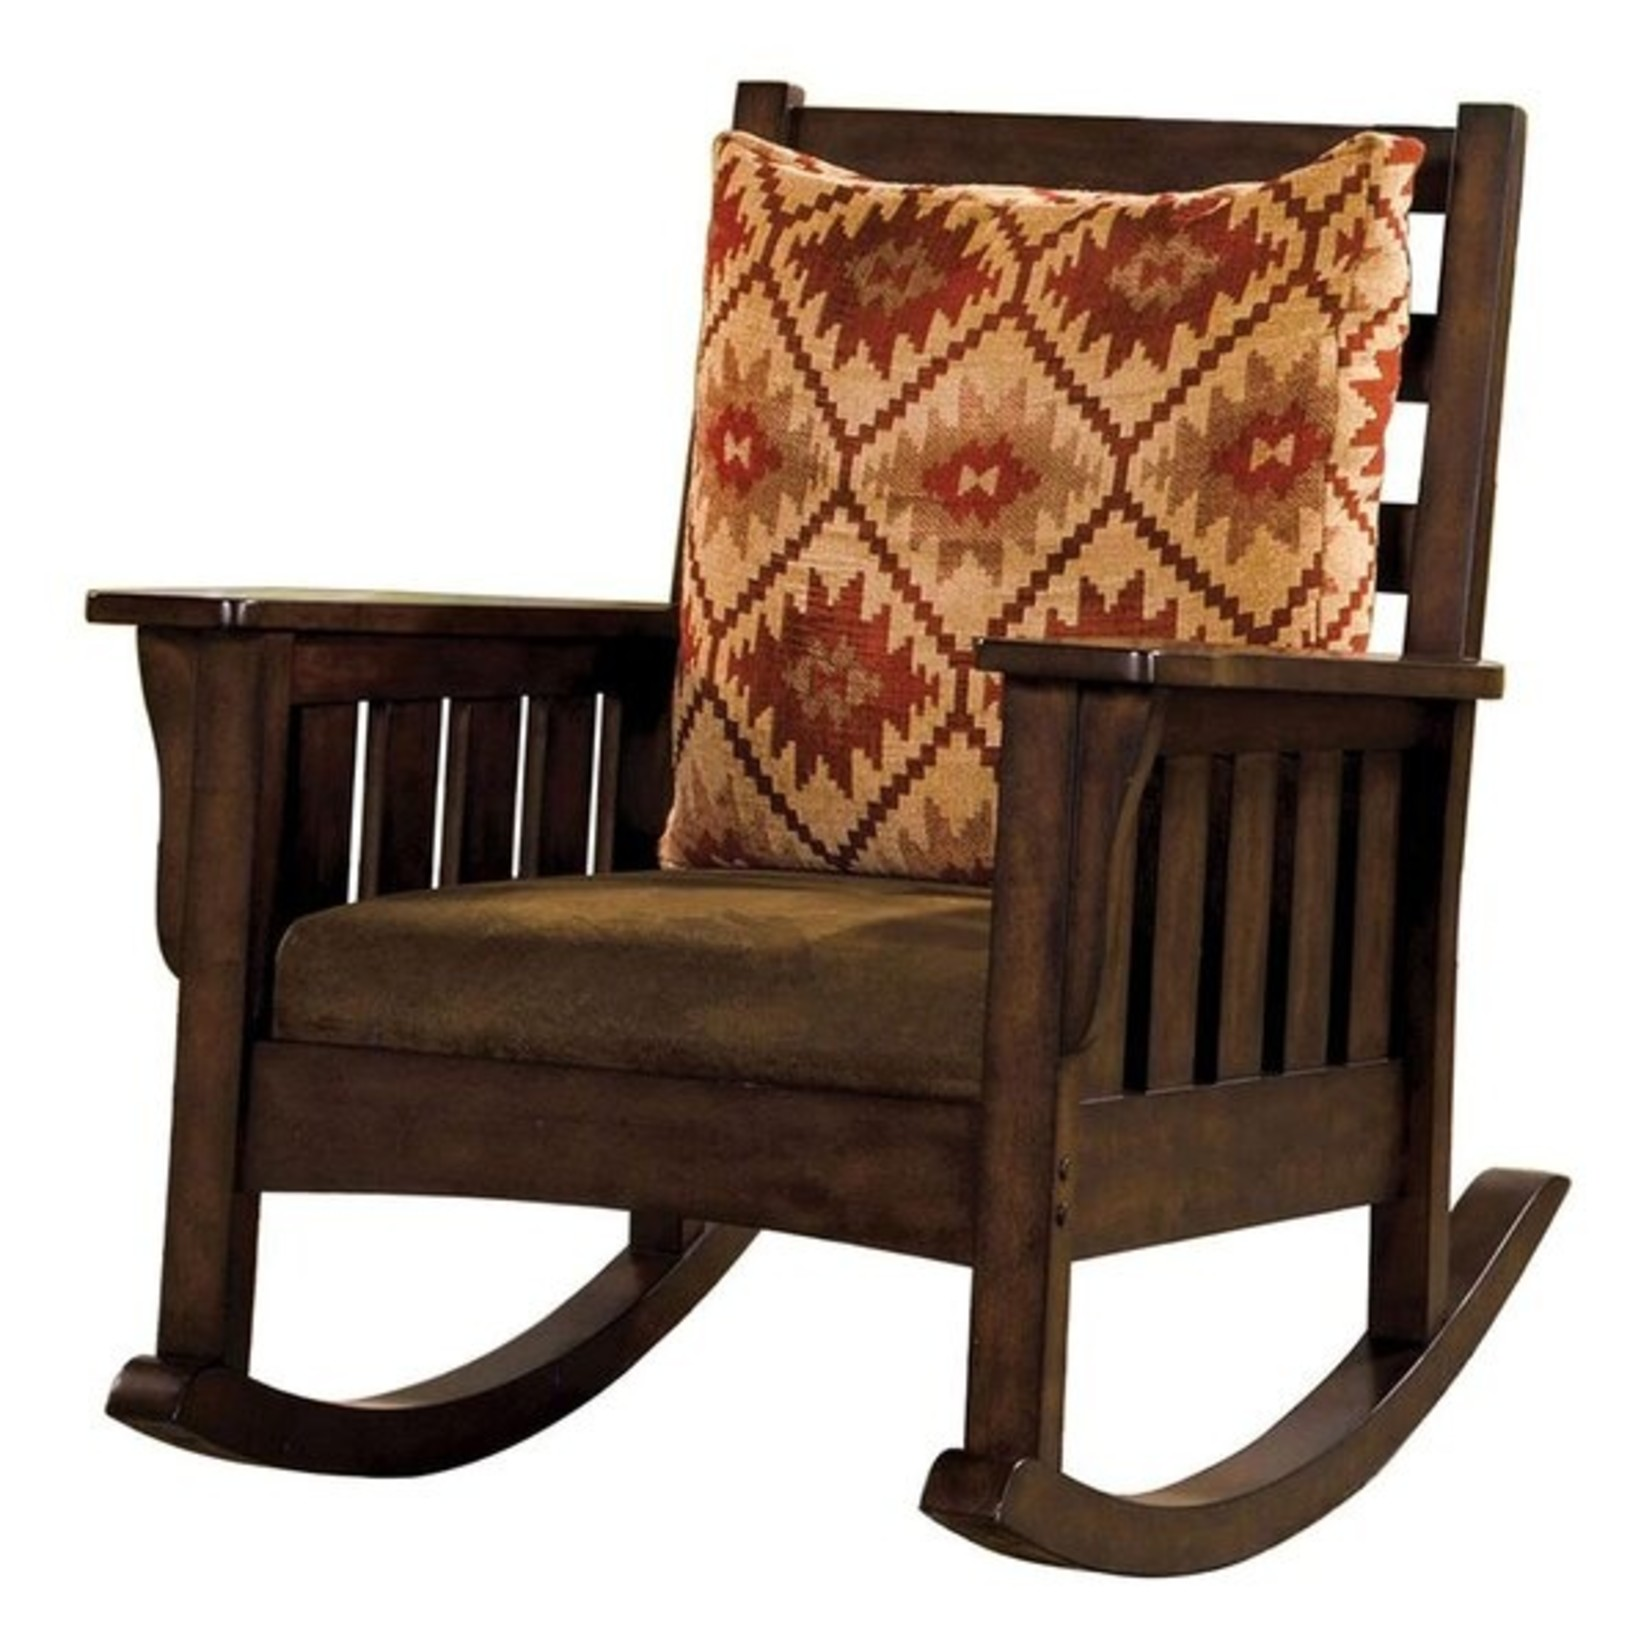 *Lucy Rocking Chair